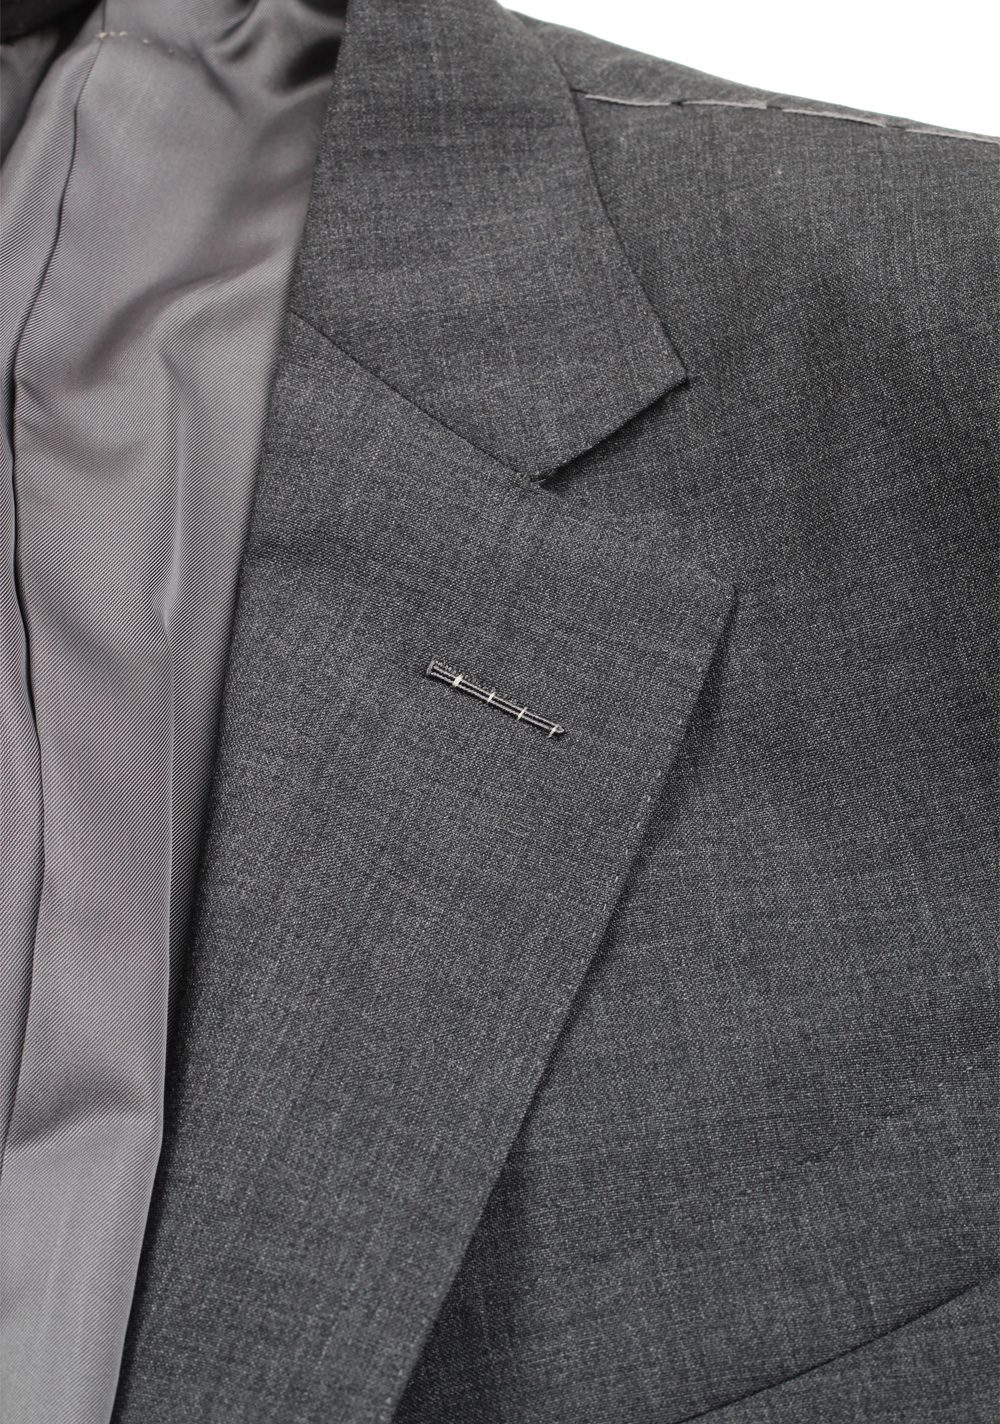 TOM FORD O'Connor Gray Suit Size 46 / 36R U.S. | Costume Limité